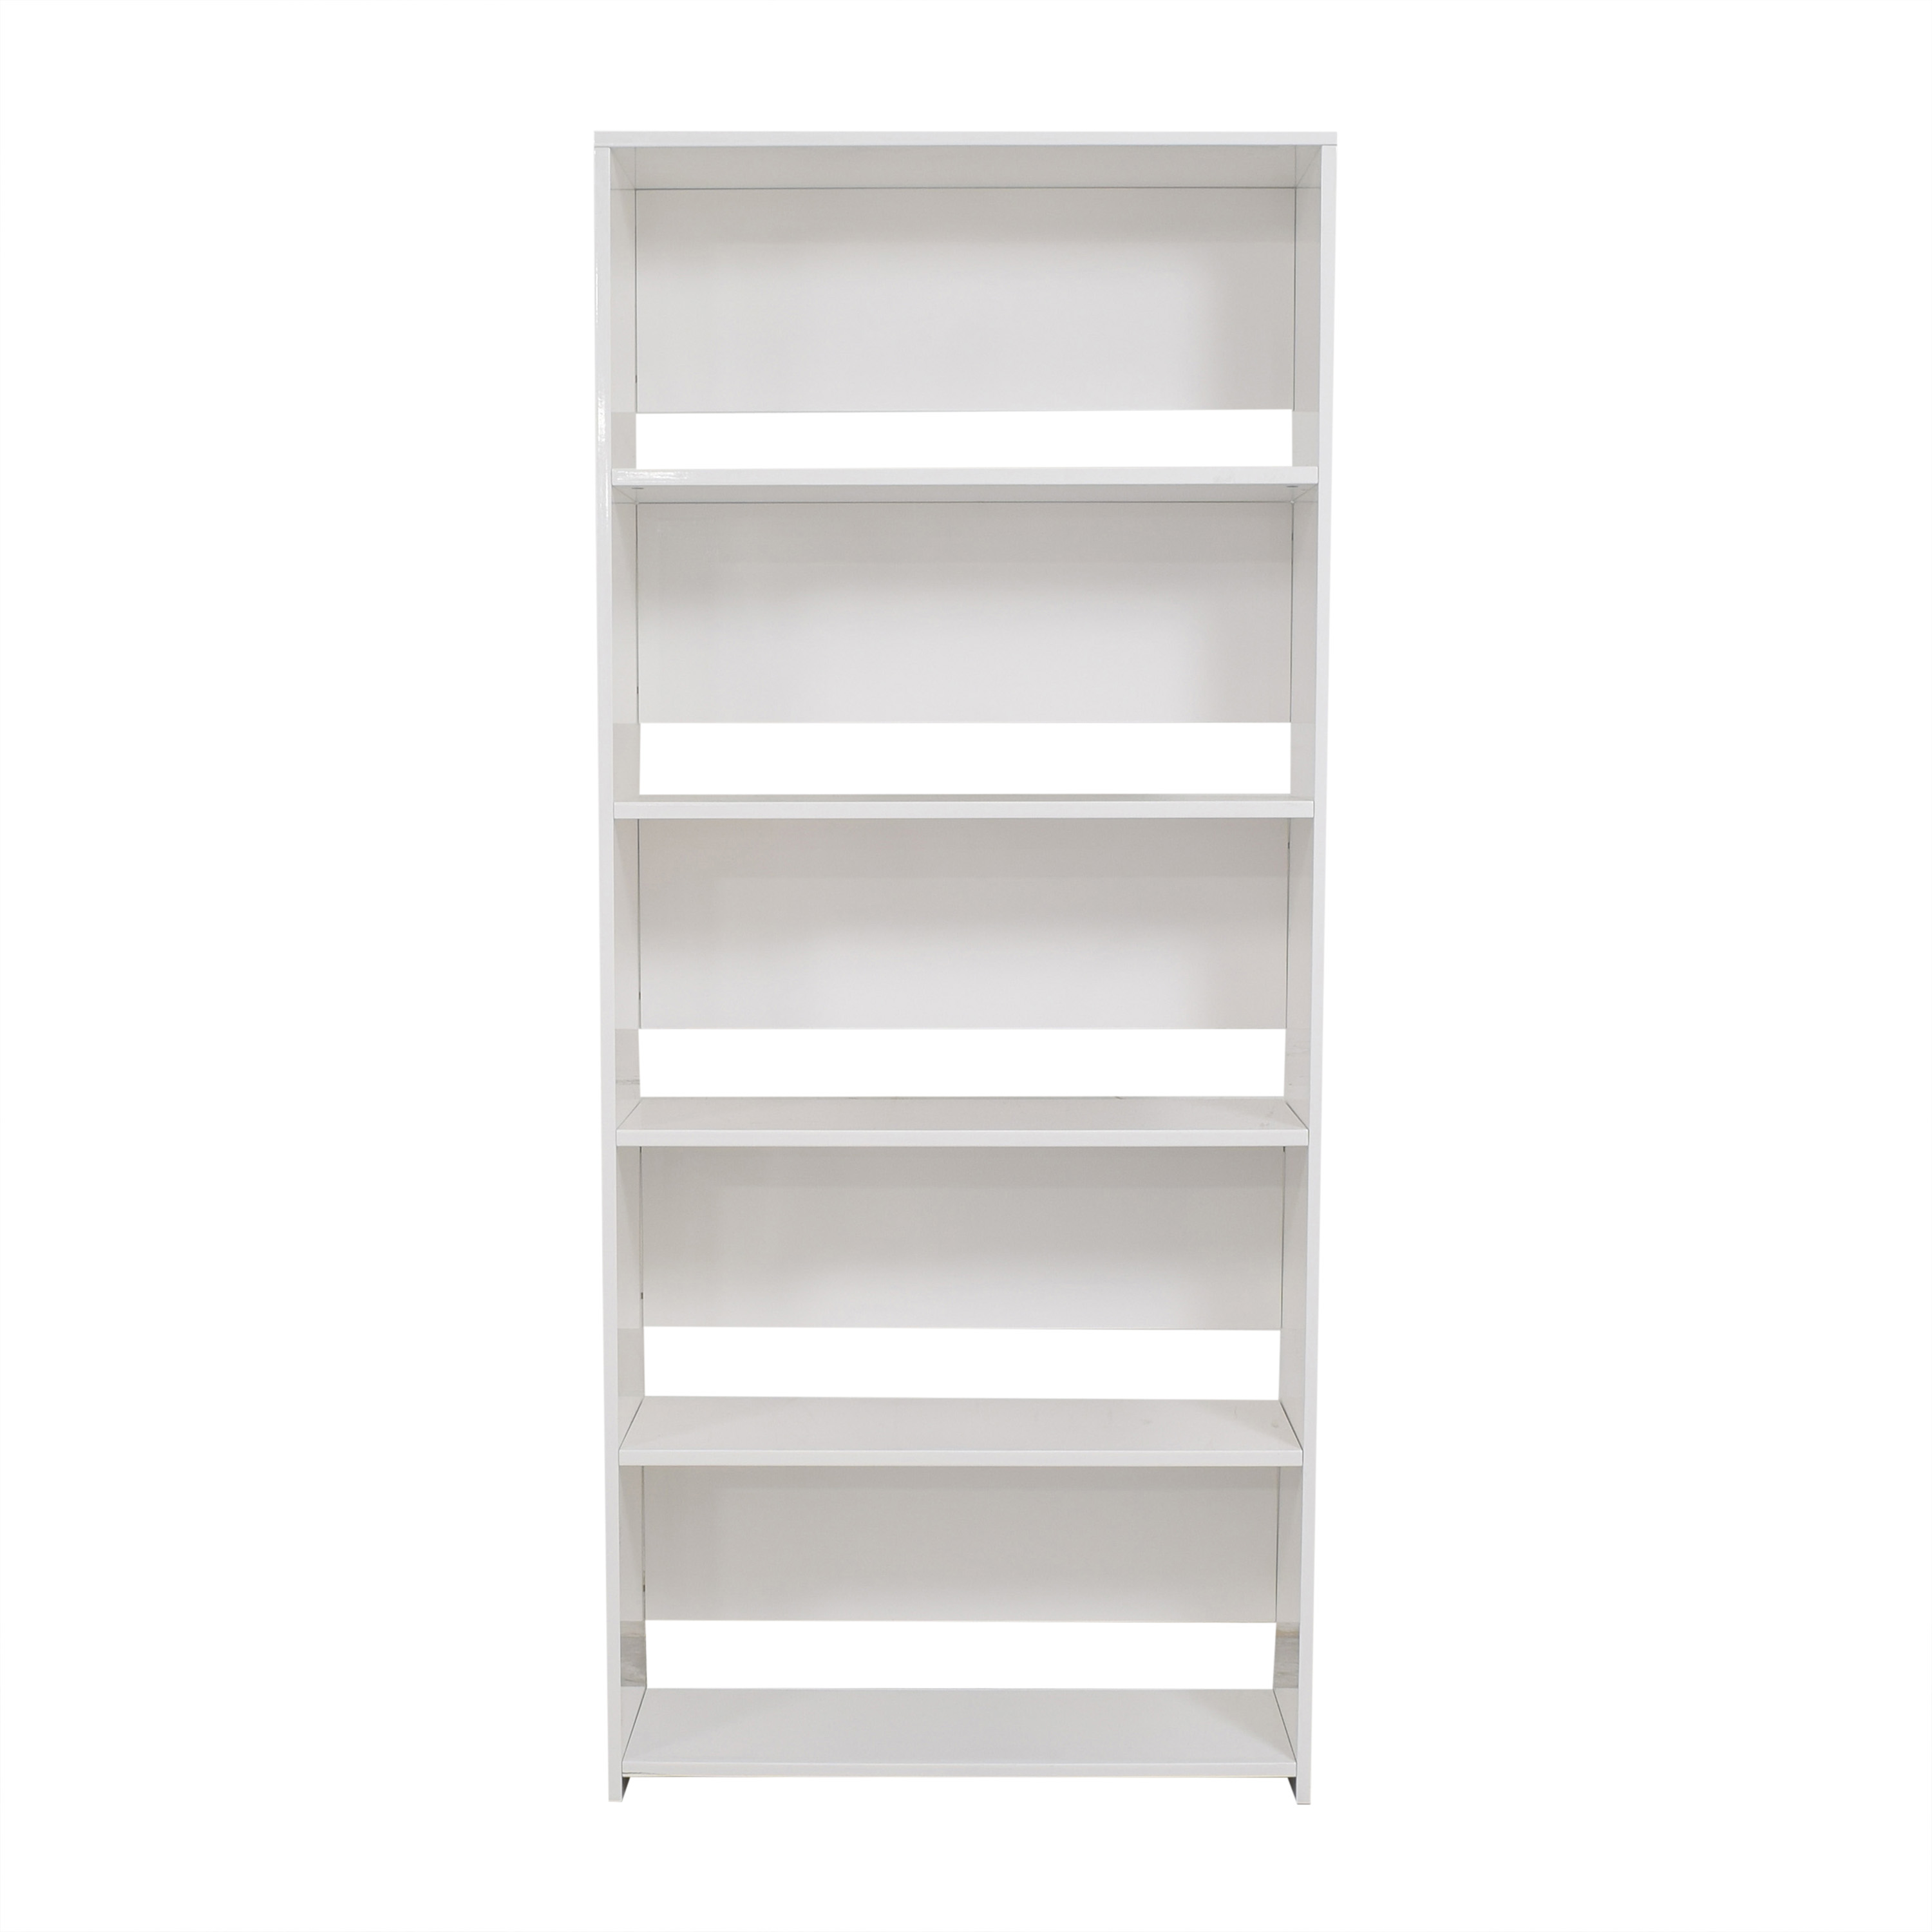 CB2 CB2 Getaway Wide Bookcase coupon